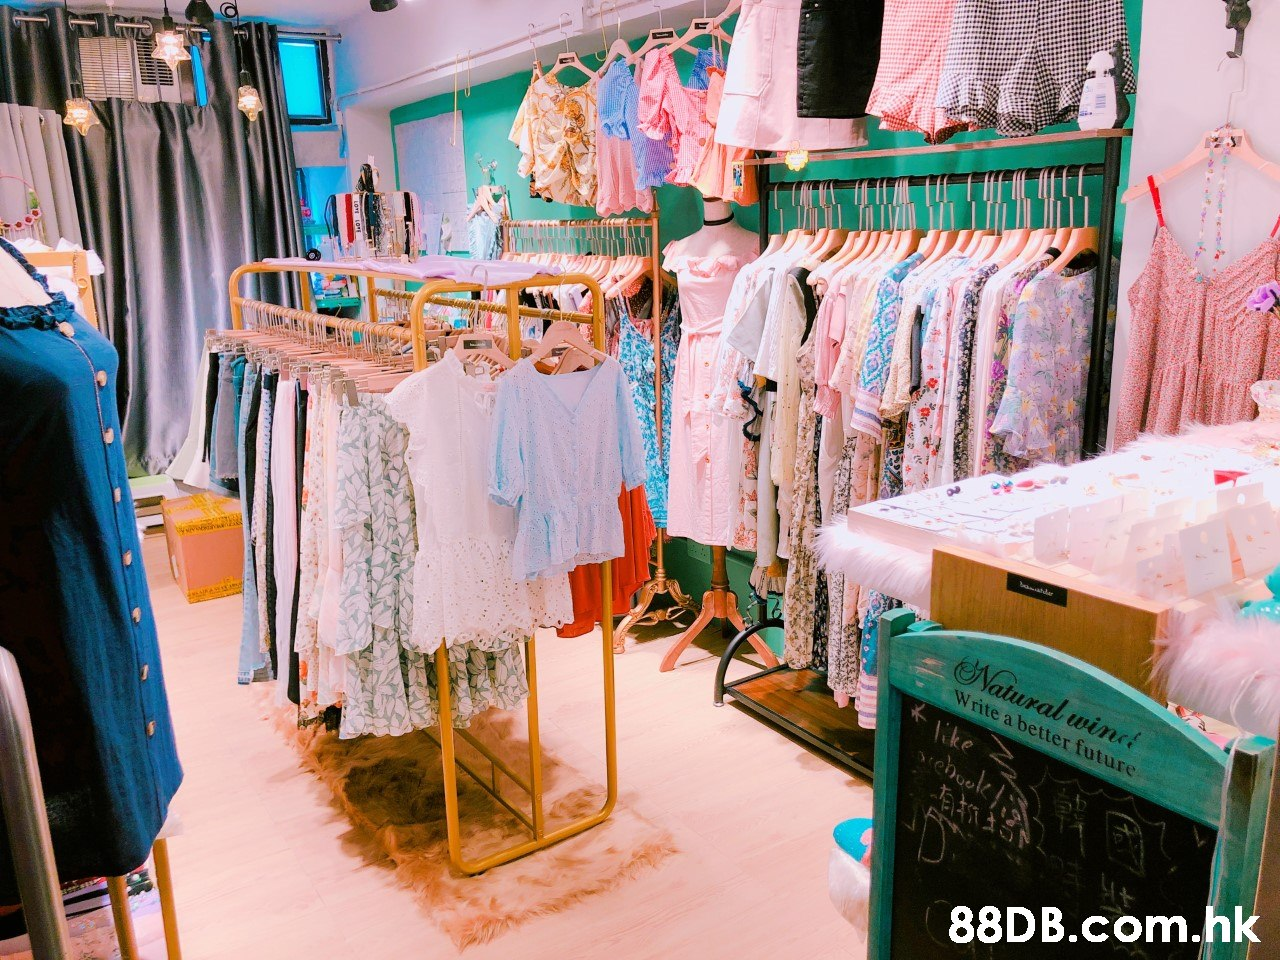 Natural winc Write a better future ike .hk  Boutique,Turquoise,Room,Textile,Dress